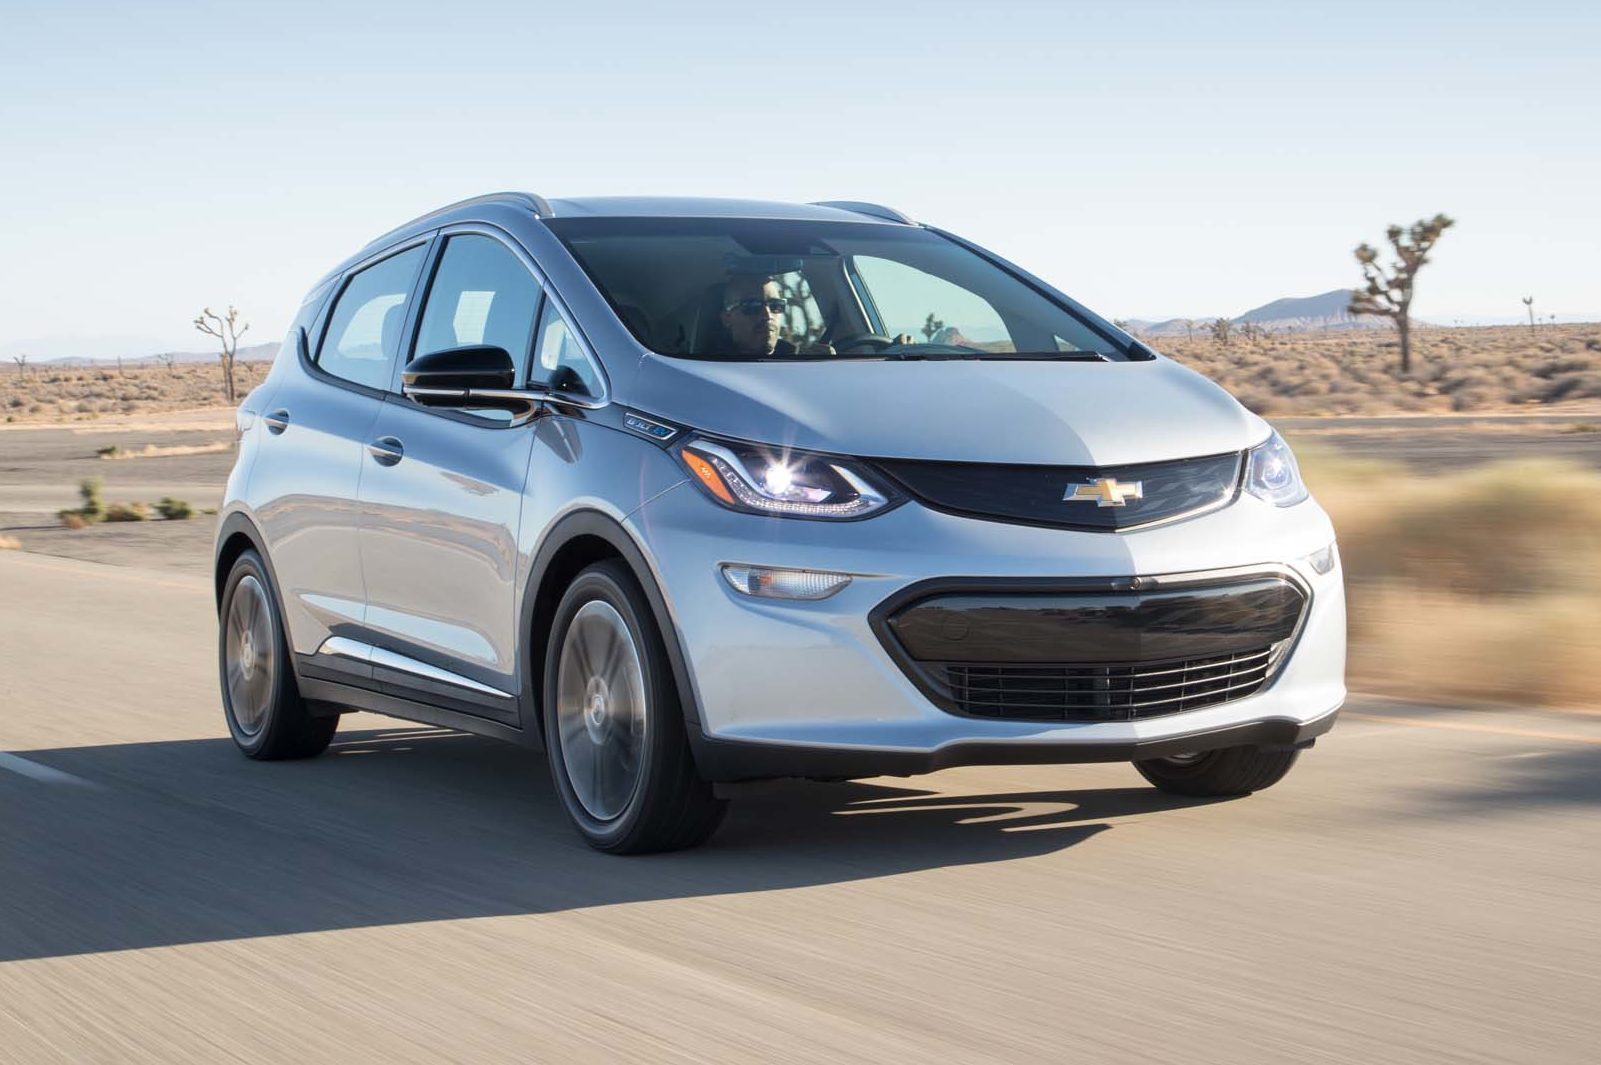 2017 Chevrolet Bolt EV Front Three Quarter In Motion E1477945416849 52